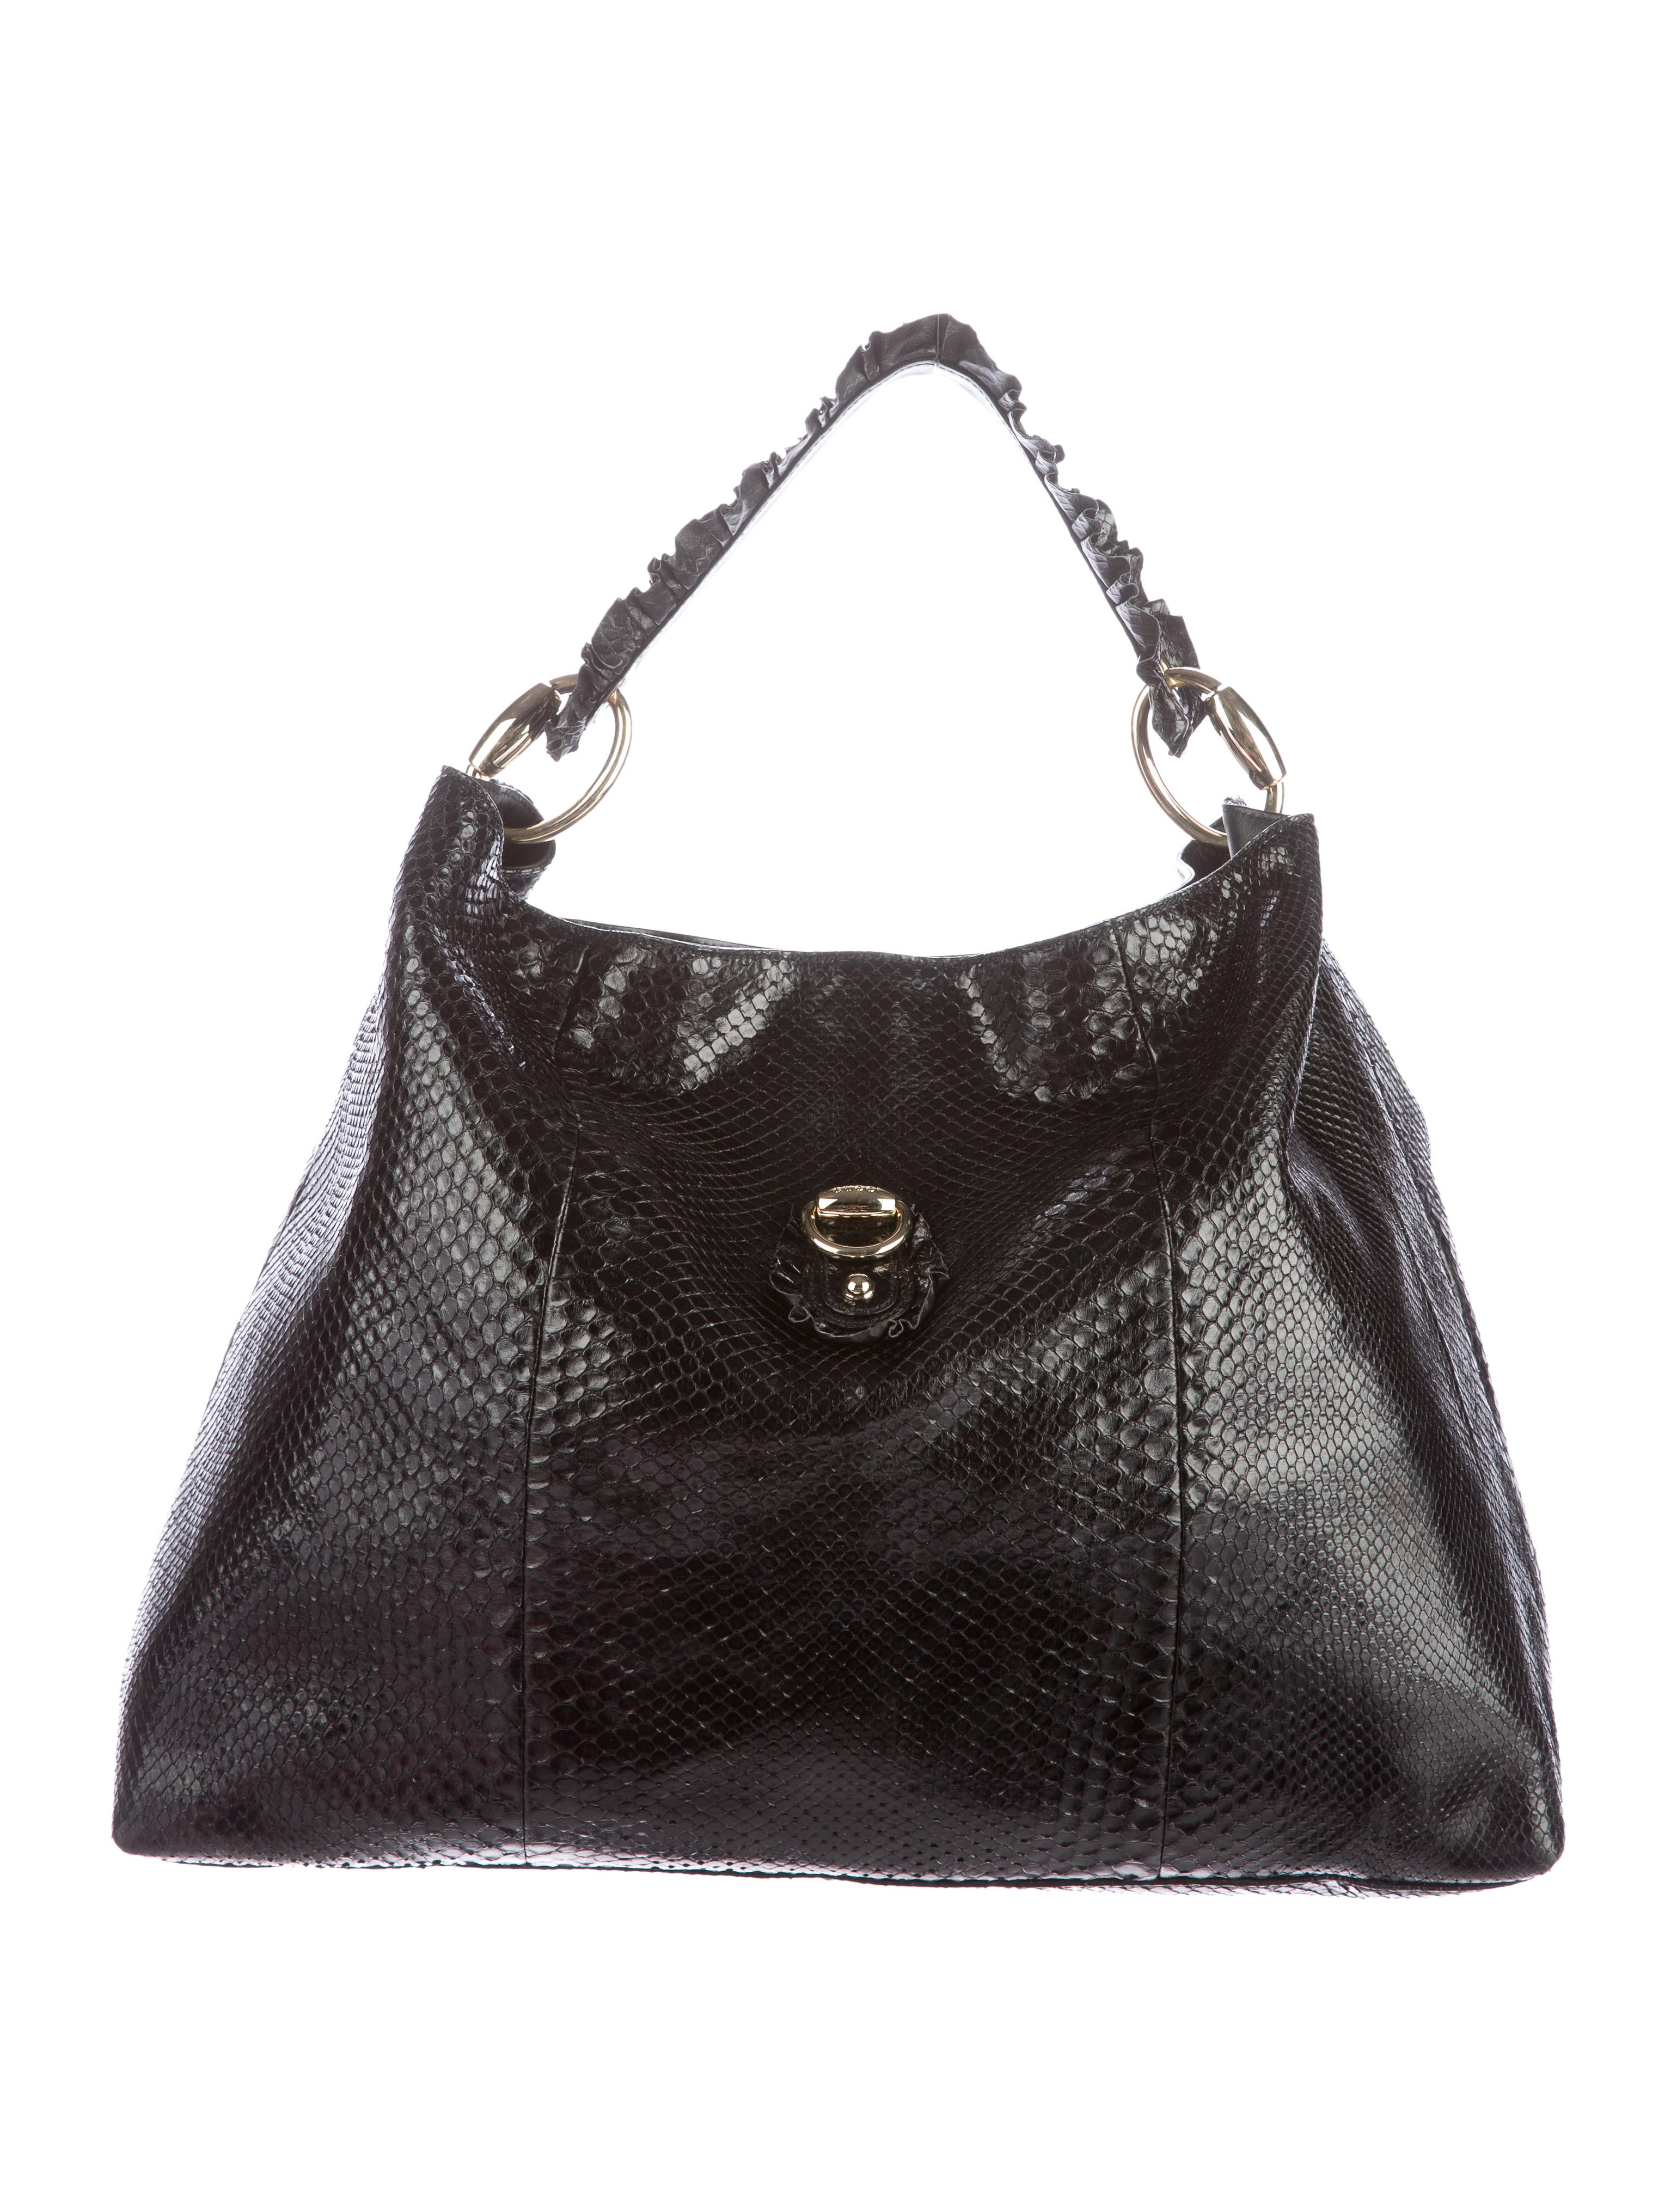 Tawny and brown snakeskin Jimmy Choo Ramona Hobo with gold-tone hardware, single layered shoulder strap, dual exterior zip pockets at sides, taupe suede trim, caramel microfiber lining, four pockets at interior walls; one with zip closure and flip-lock closure at front.